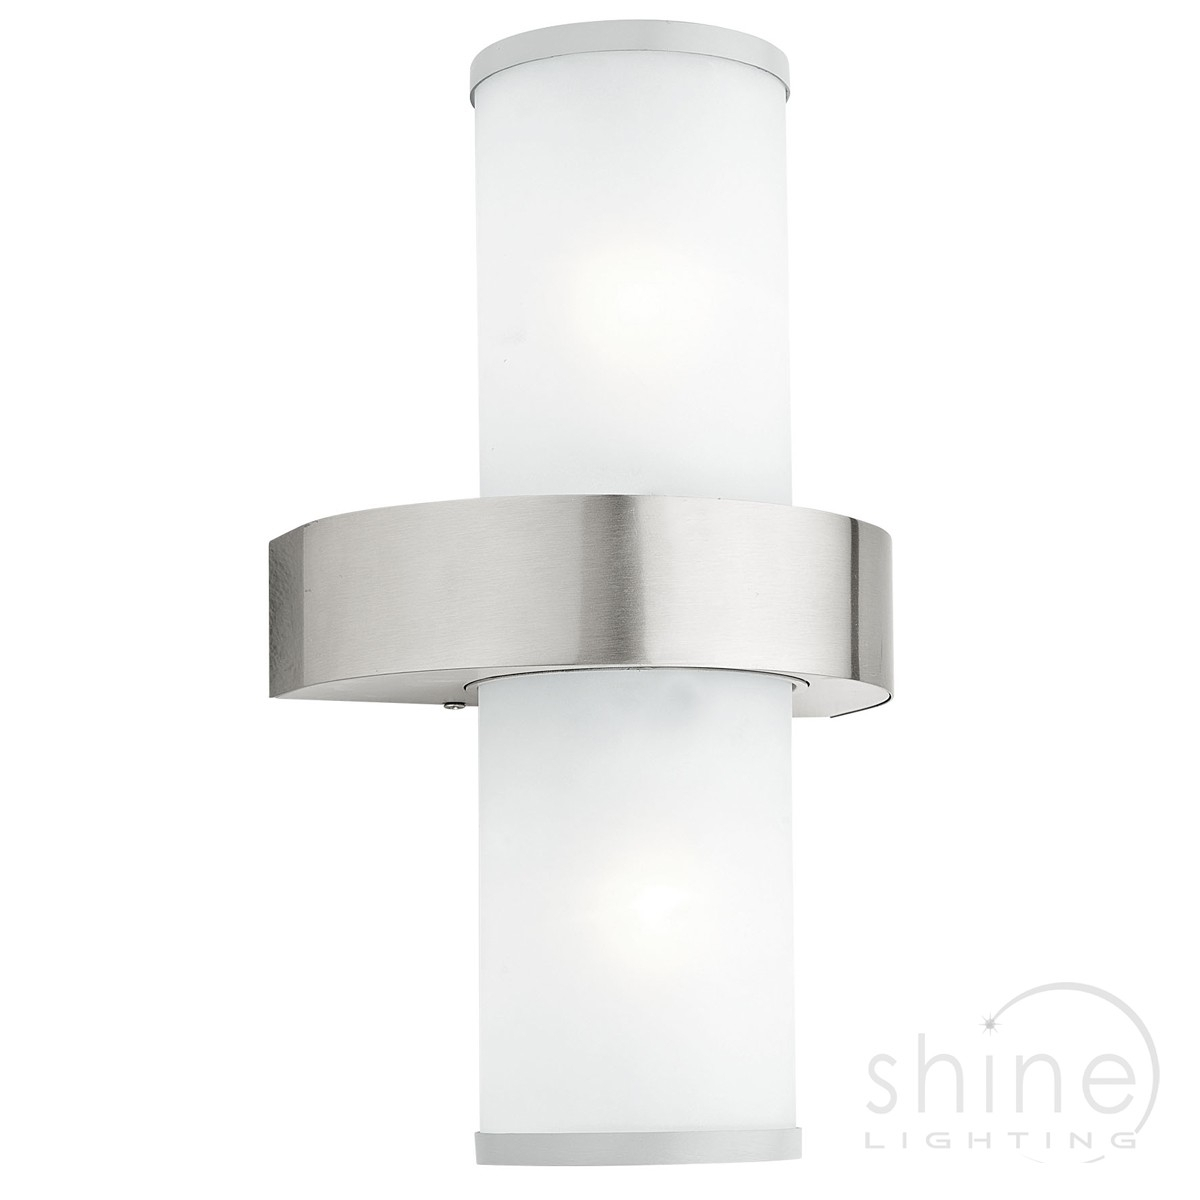 Outdoor Garden Double Wall Light. Silver With Frosted Glass (View 15 of 15)